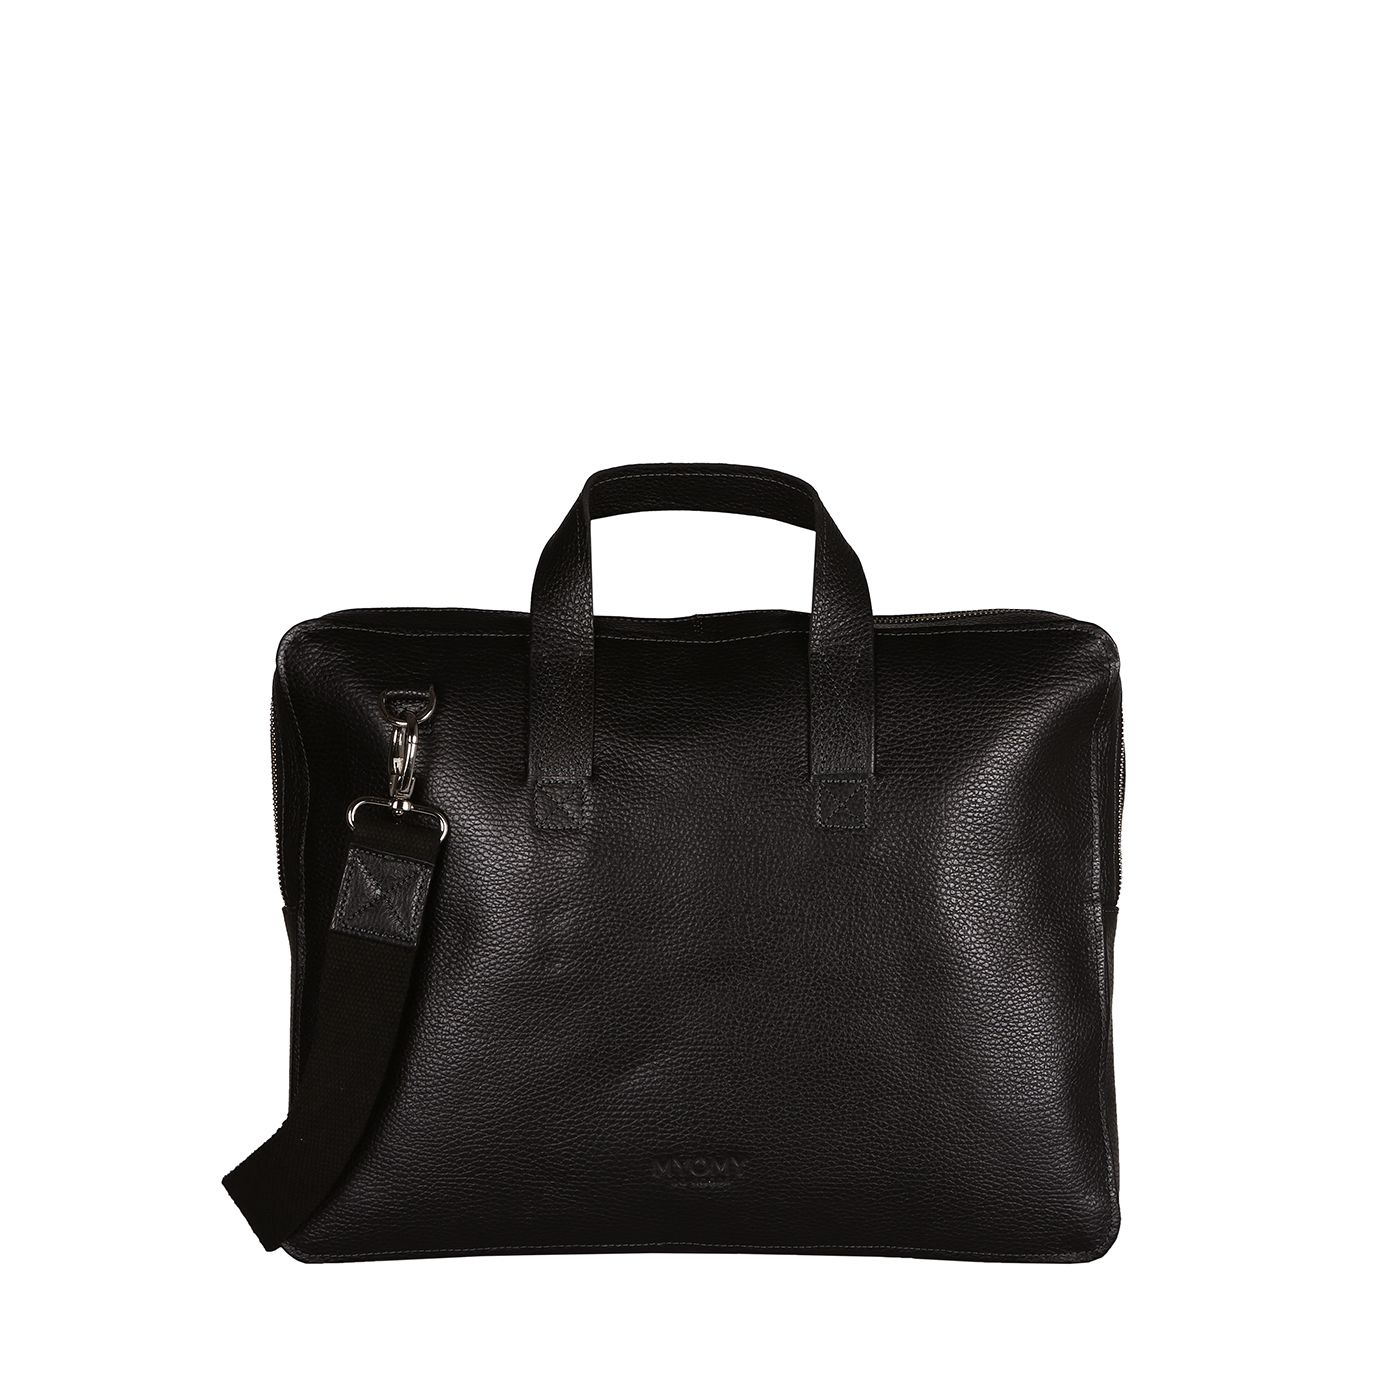 MY PAPER BAG Laptop - rambler black